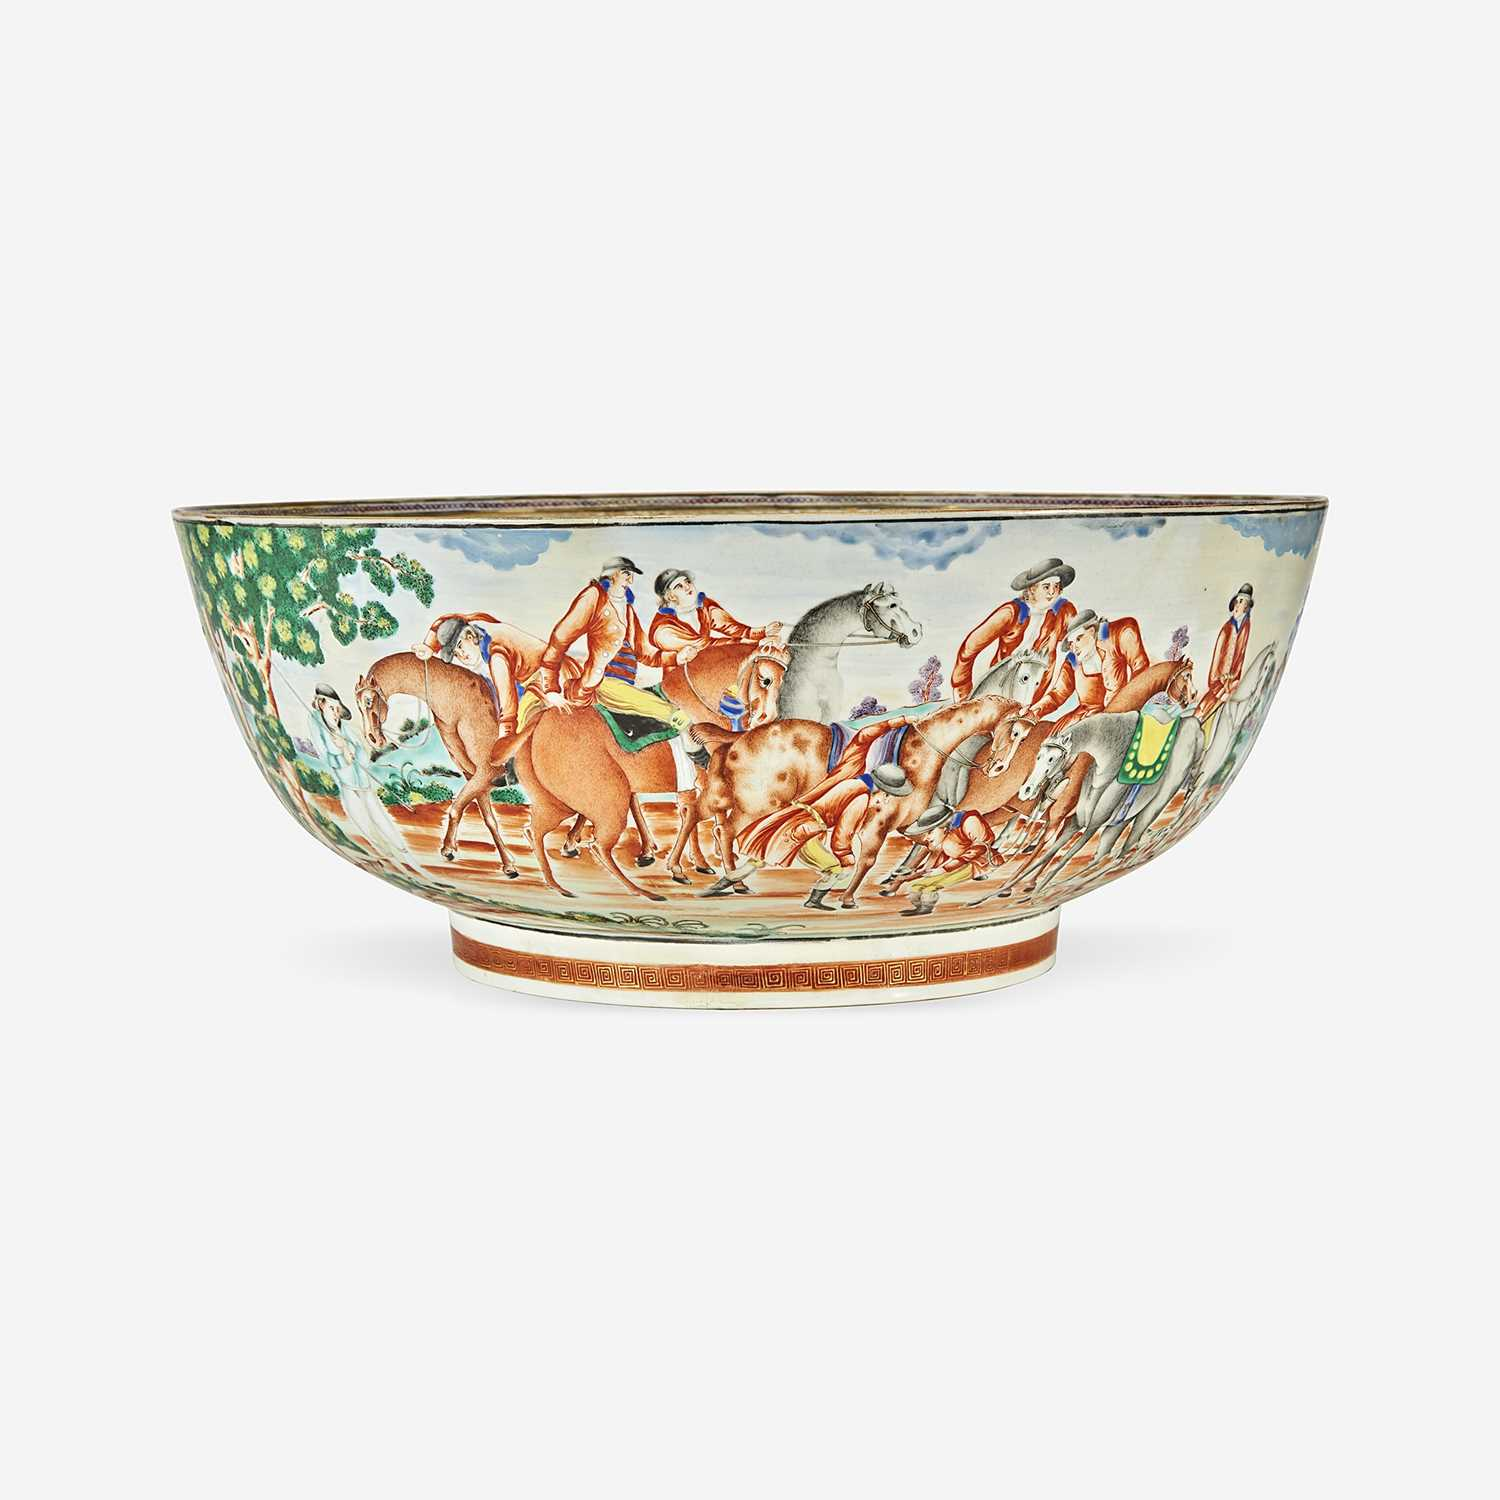 Lot 92 - A Chinese Export porcelain gilt and polychrome decorated punch bowl with hunt scene